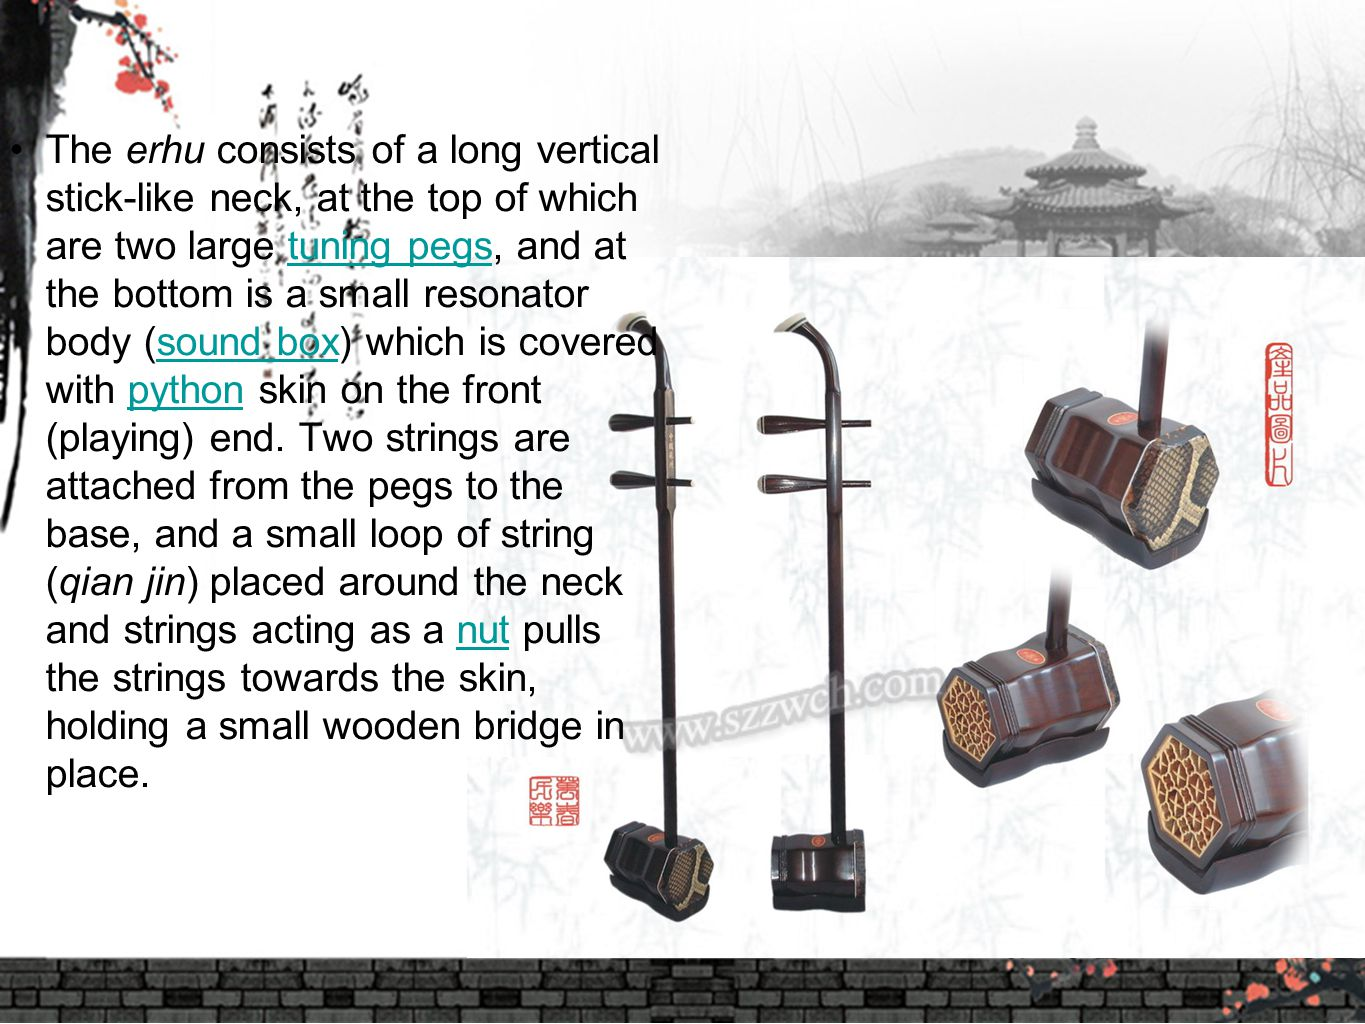 The erhu consists of a long vertical stick-like neck, at the top of which are two large tuning pegs, and at the bottom is a small resonator body (sound box) which is covered with python skin on the front (playing) end.